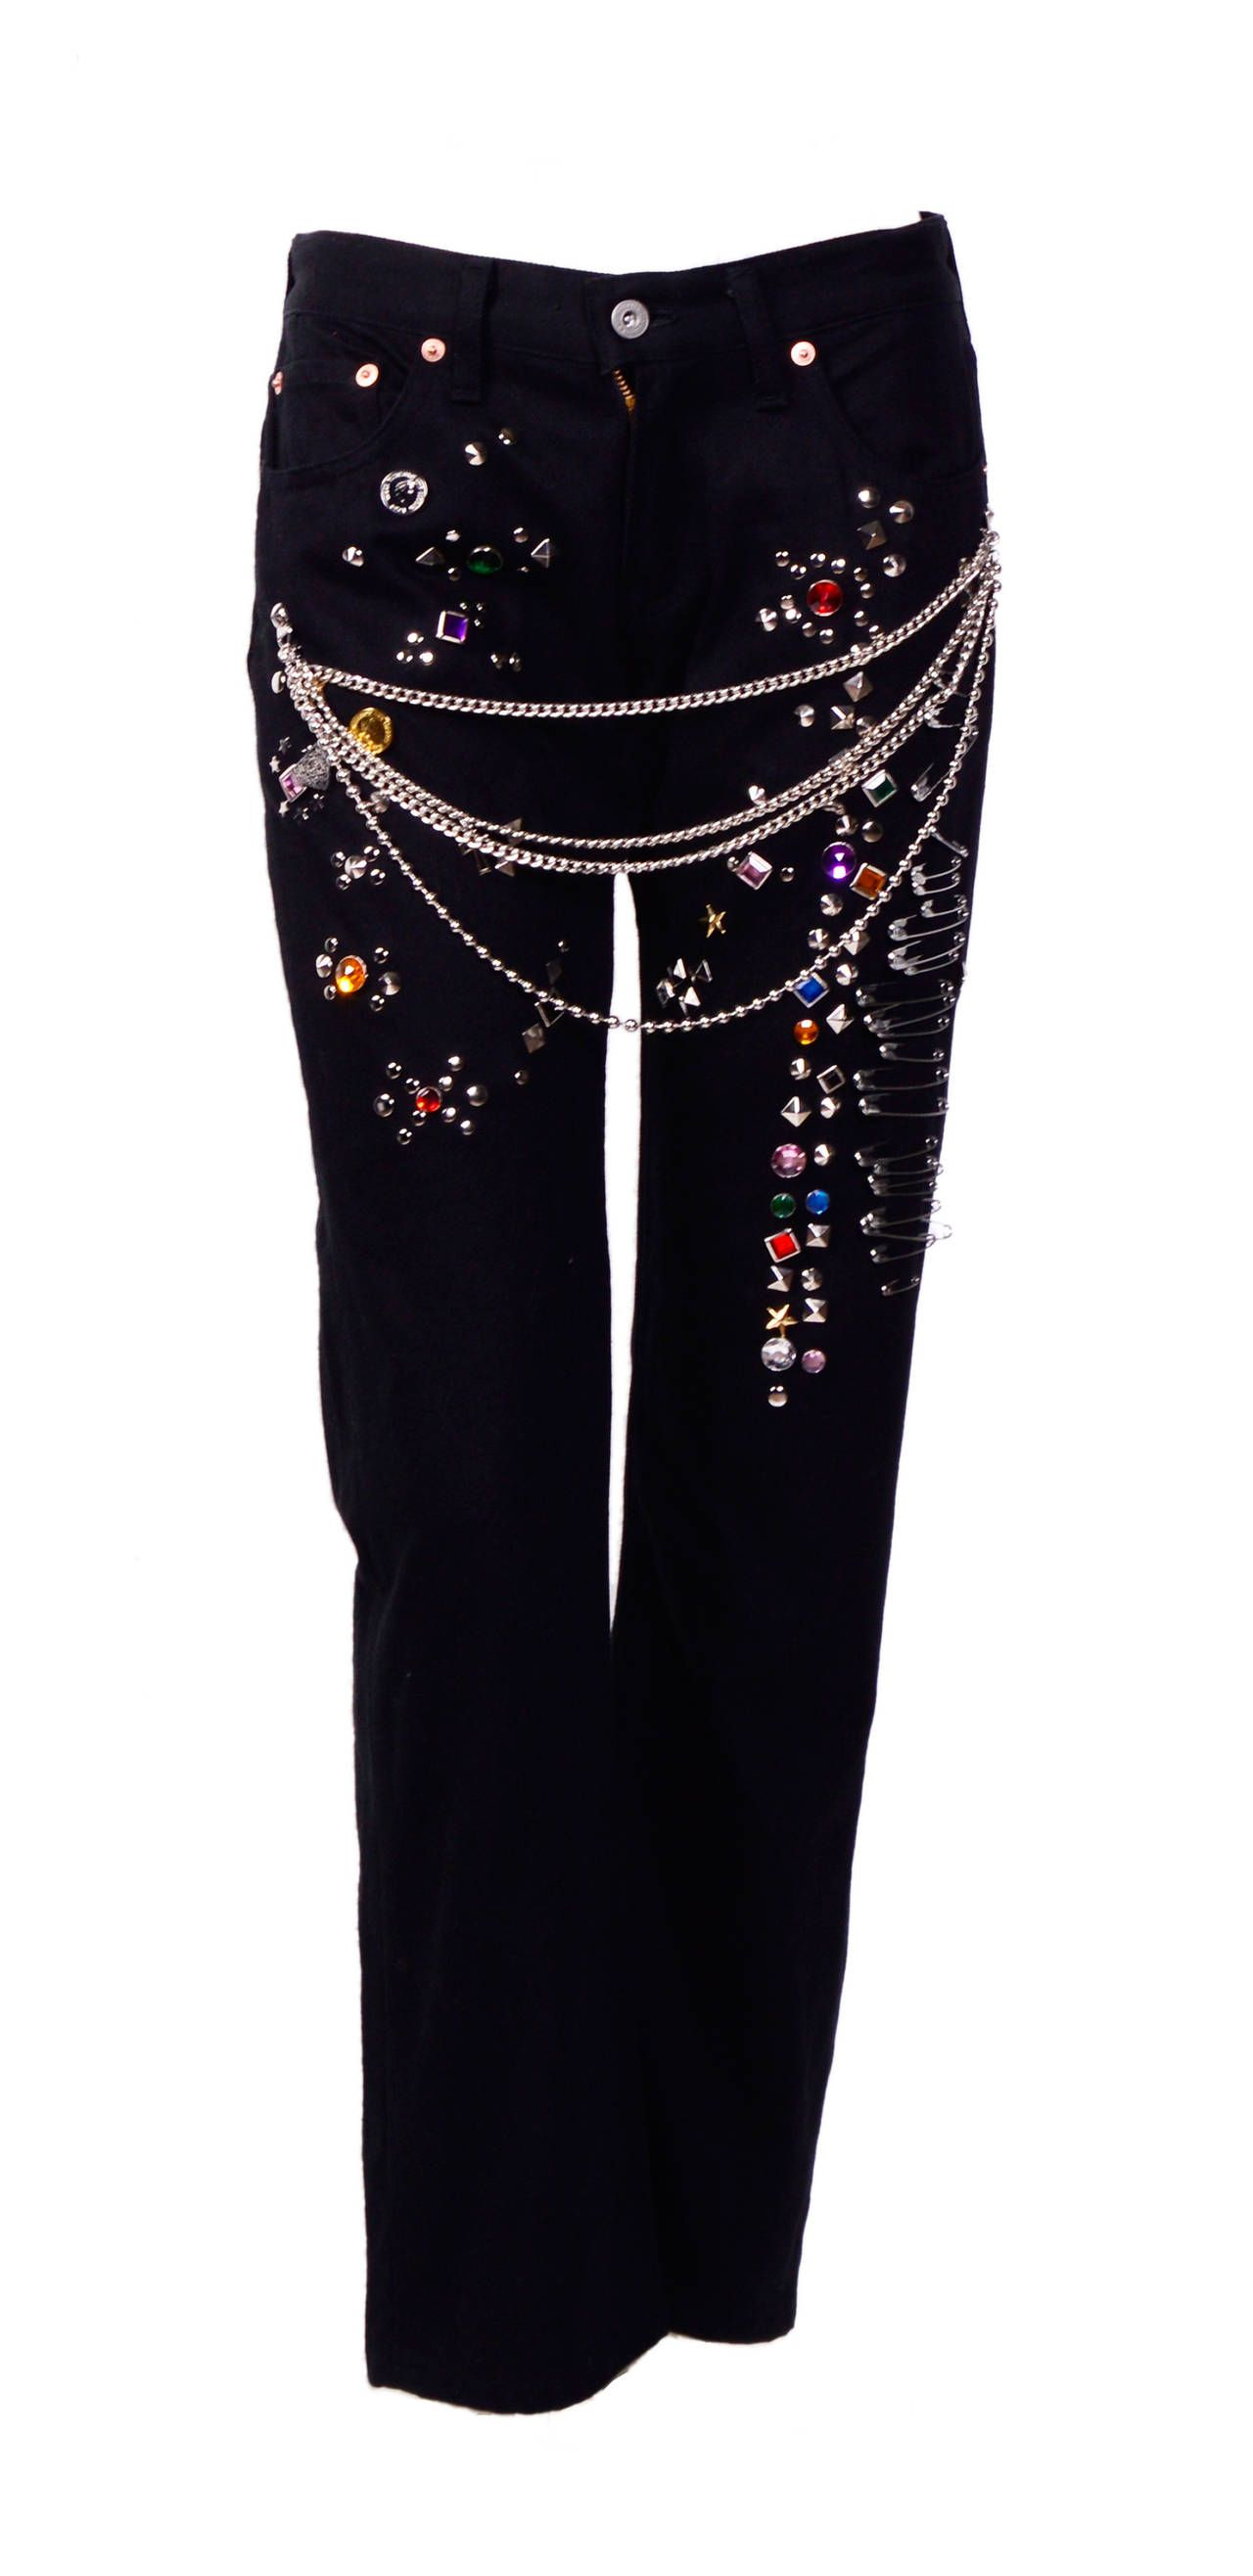 88e71632ca Comme Des Garcons Junya Watanabe Rhinestone Embellishments Black Denim Jeans  | From a collection of rare